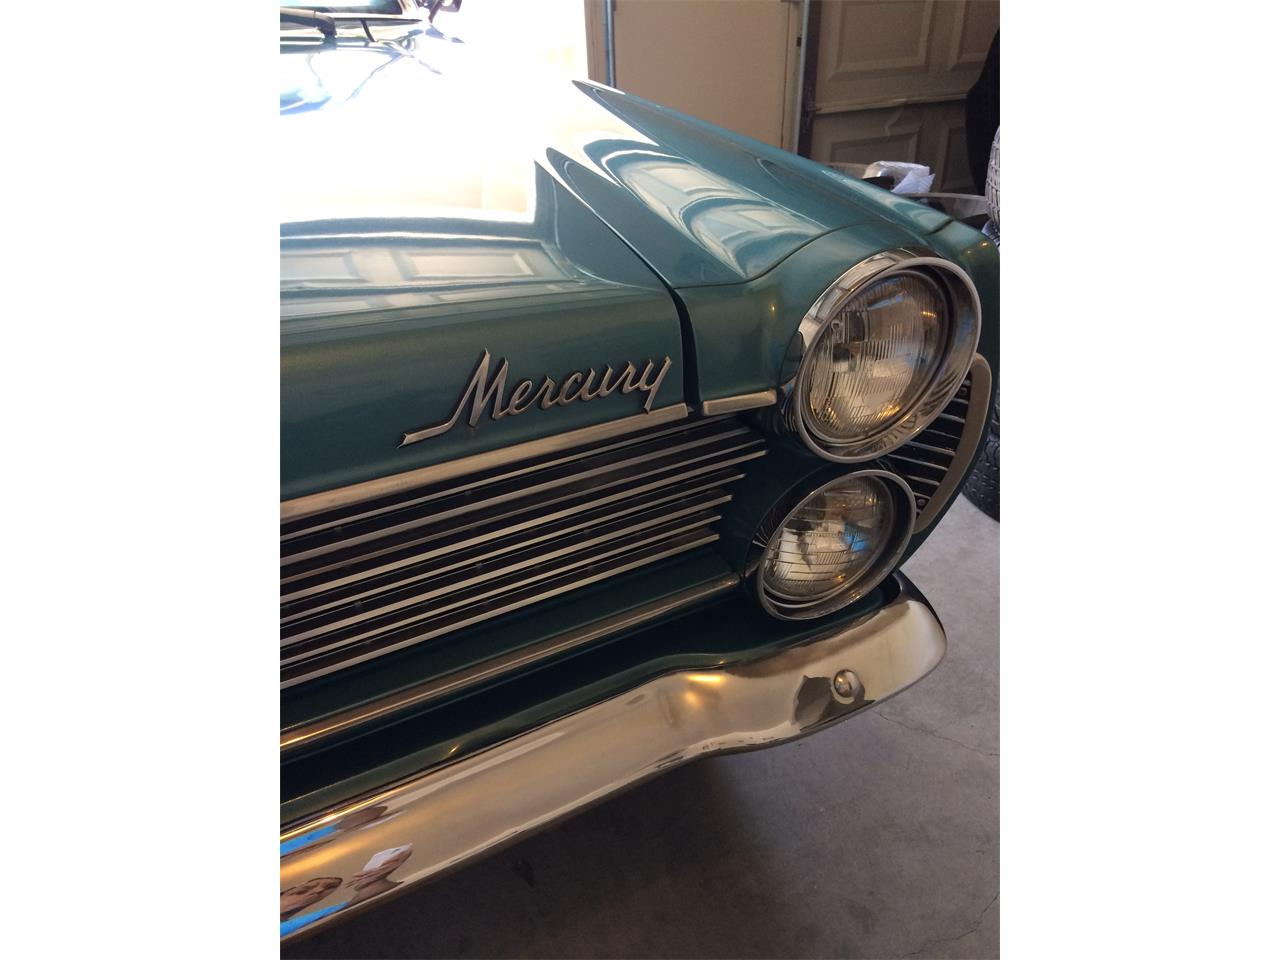 Large Picture of Classic '67 Mercury Comet located in Oklahoma - $19,900.00 Offered by a Private Seller - PZKB